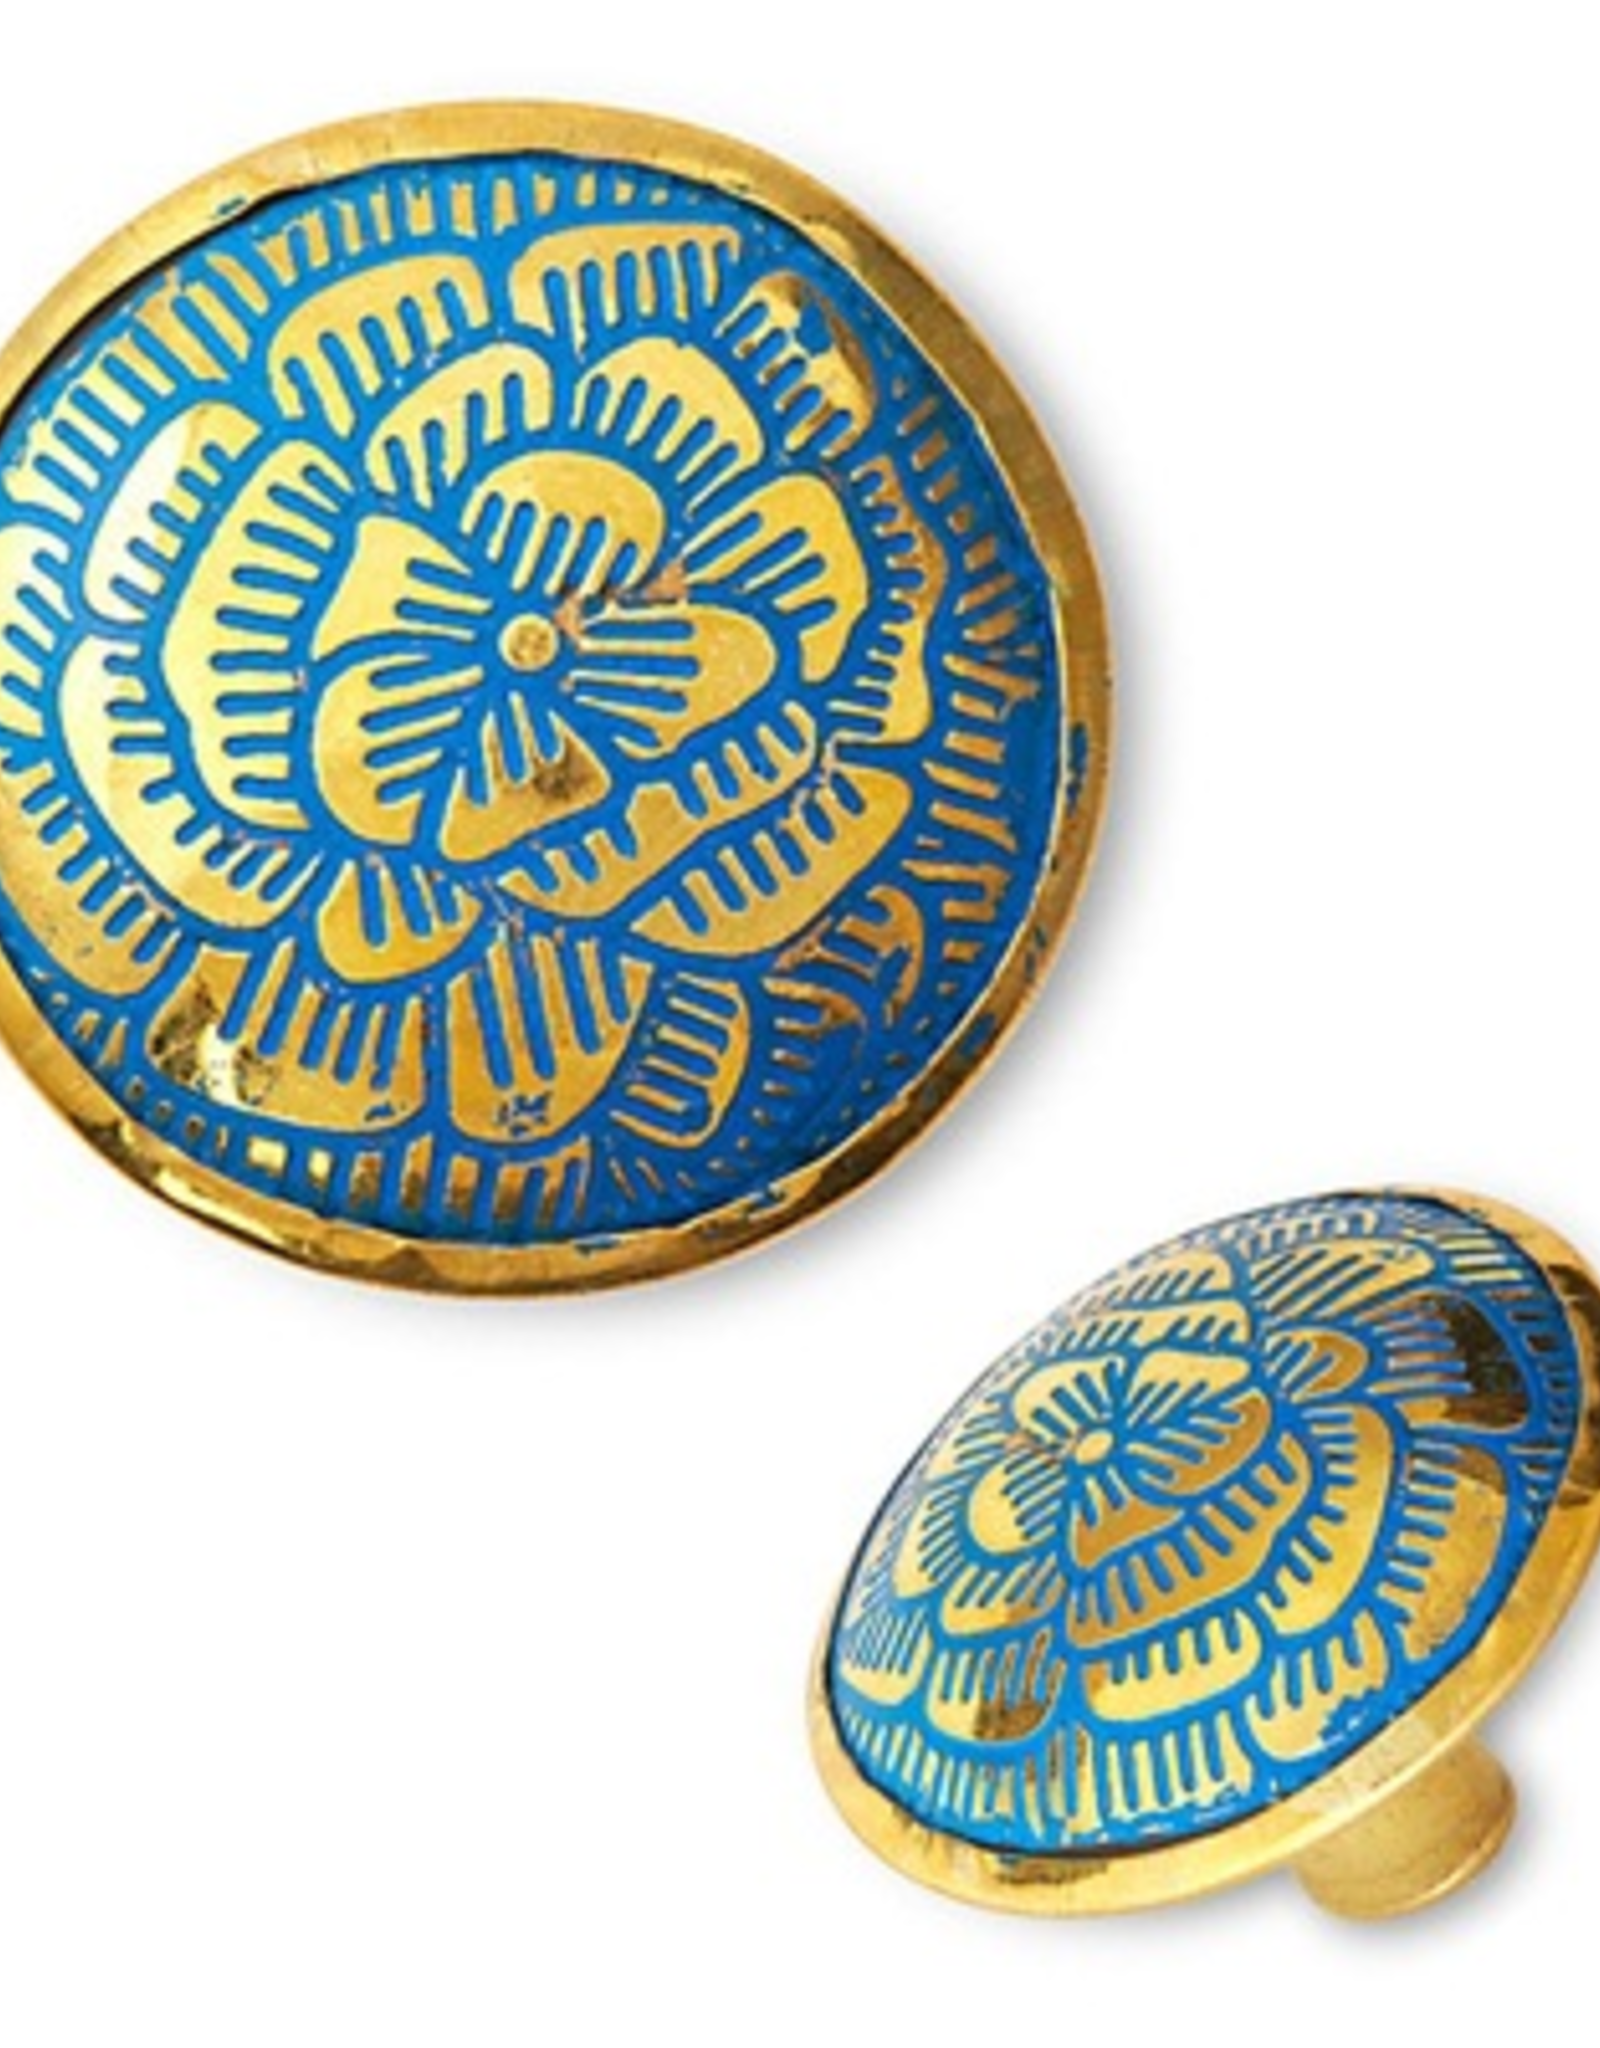 Brass Knob with Engraved Blue Flower Pattern